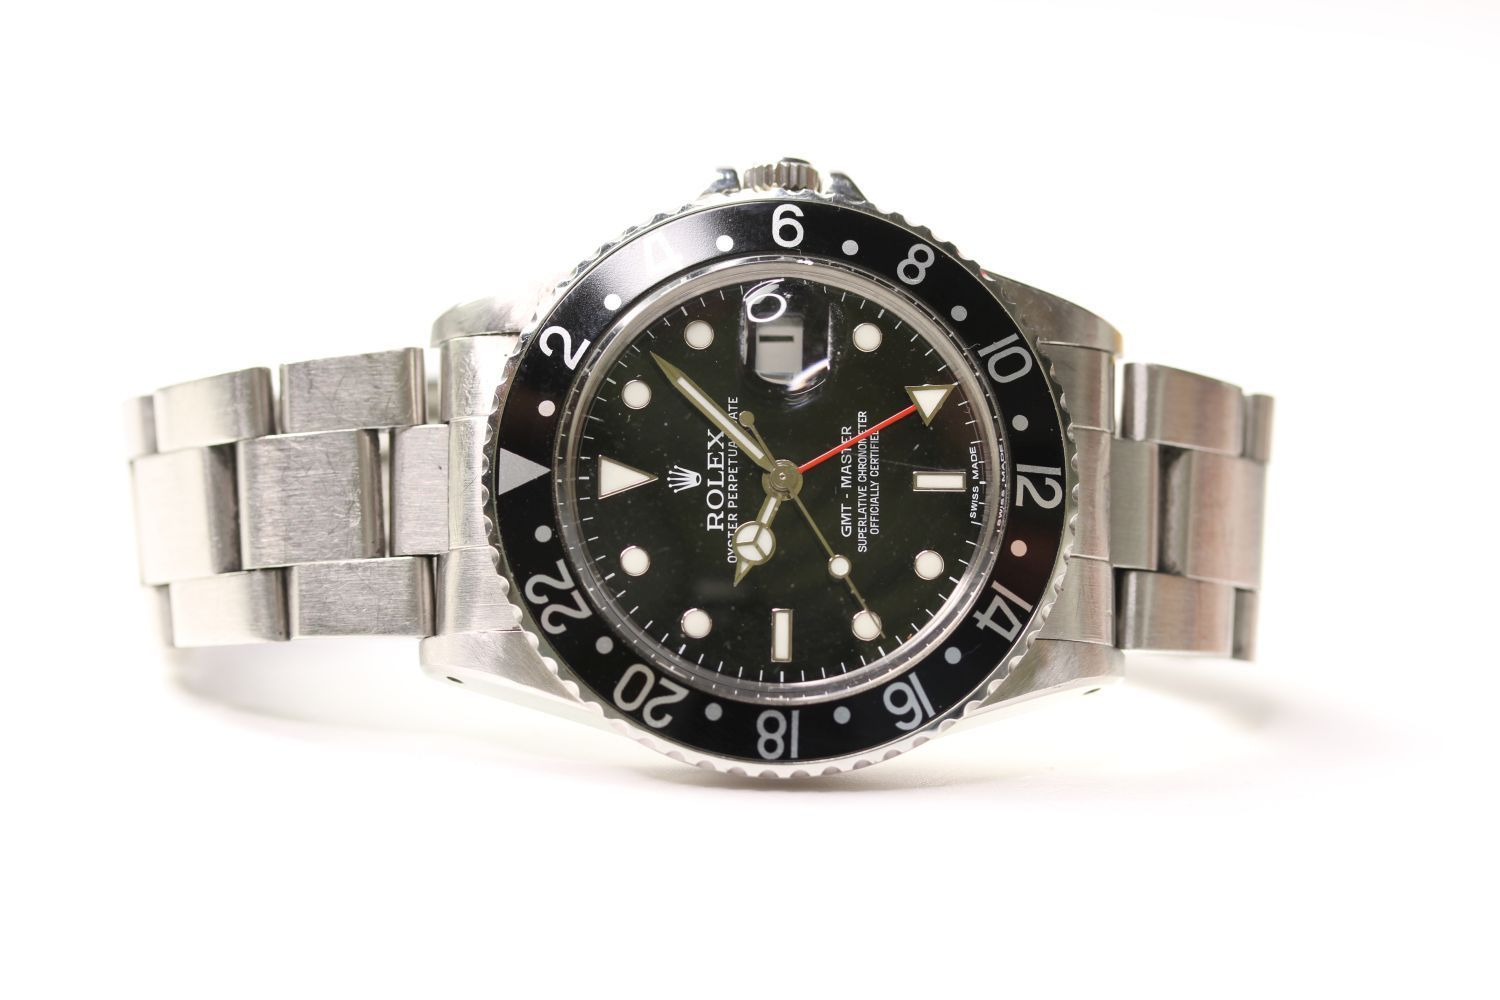 VINTAGE ROLEX GMT MASTER REFERENCE 16750 WITH BOX AND ROLEX SERVICE CARD, circular black dial with